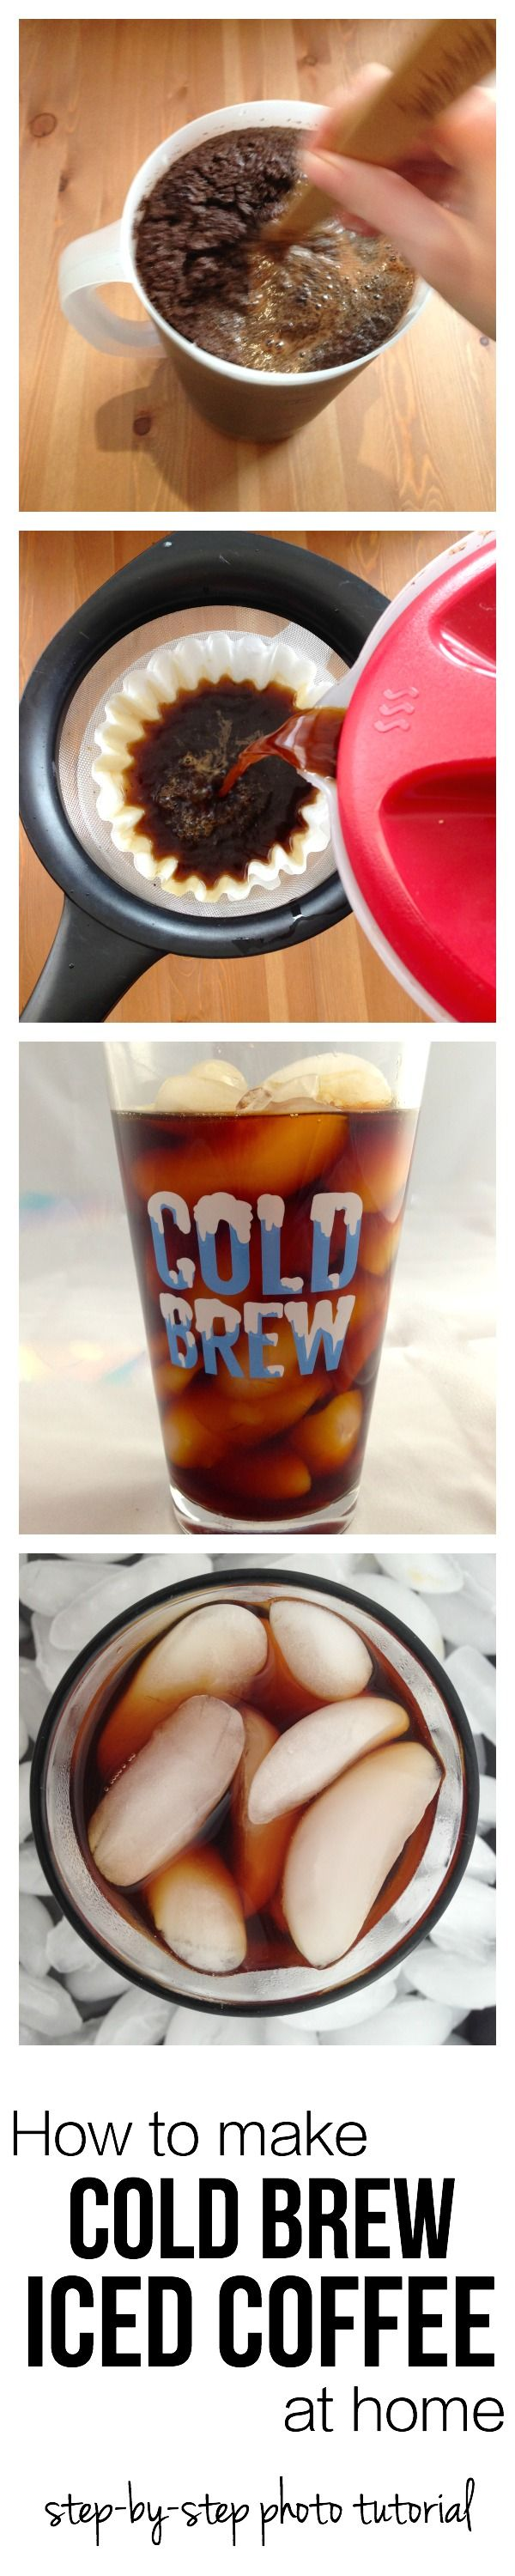 How to make ultra-smooth cold brew coffee concentrate at home, just like your favorite coffee shops